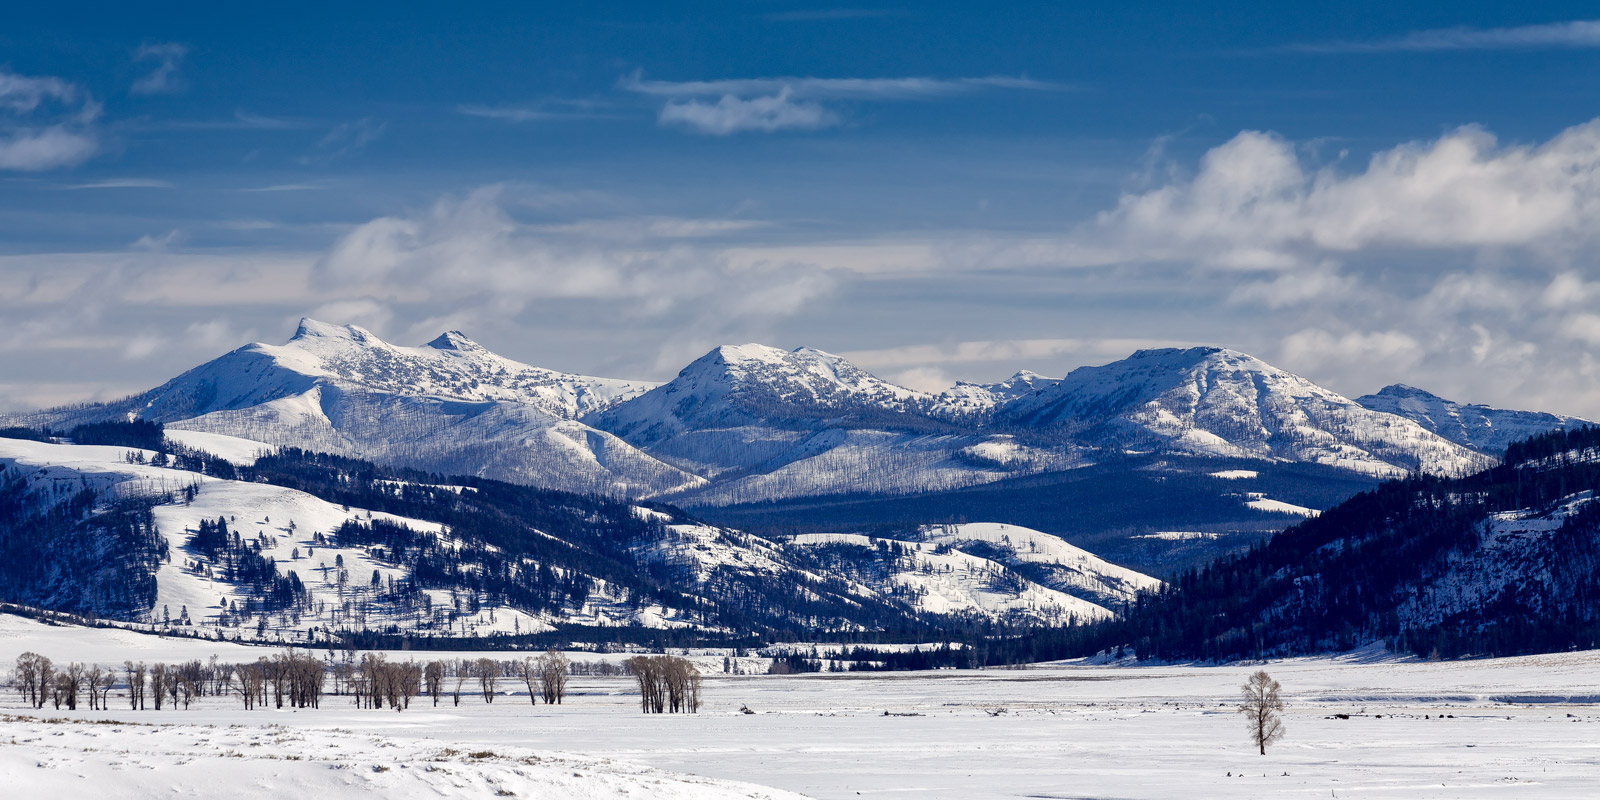 Wyoming, Yellowstone, Winter, Lamar Valley, Mountains, Snow Covered, Winter Landscape, photo